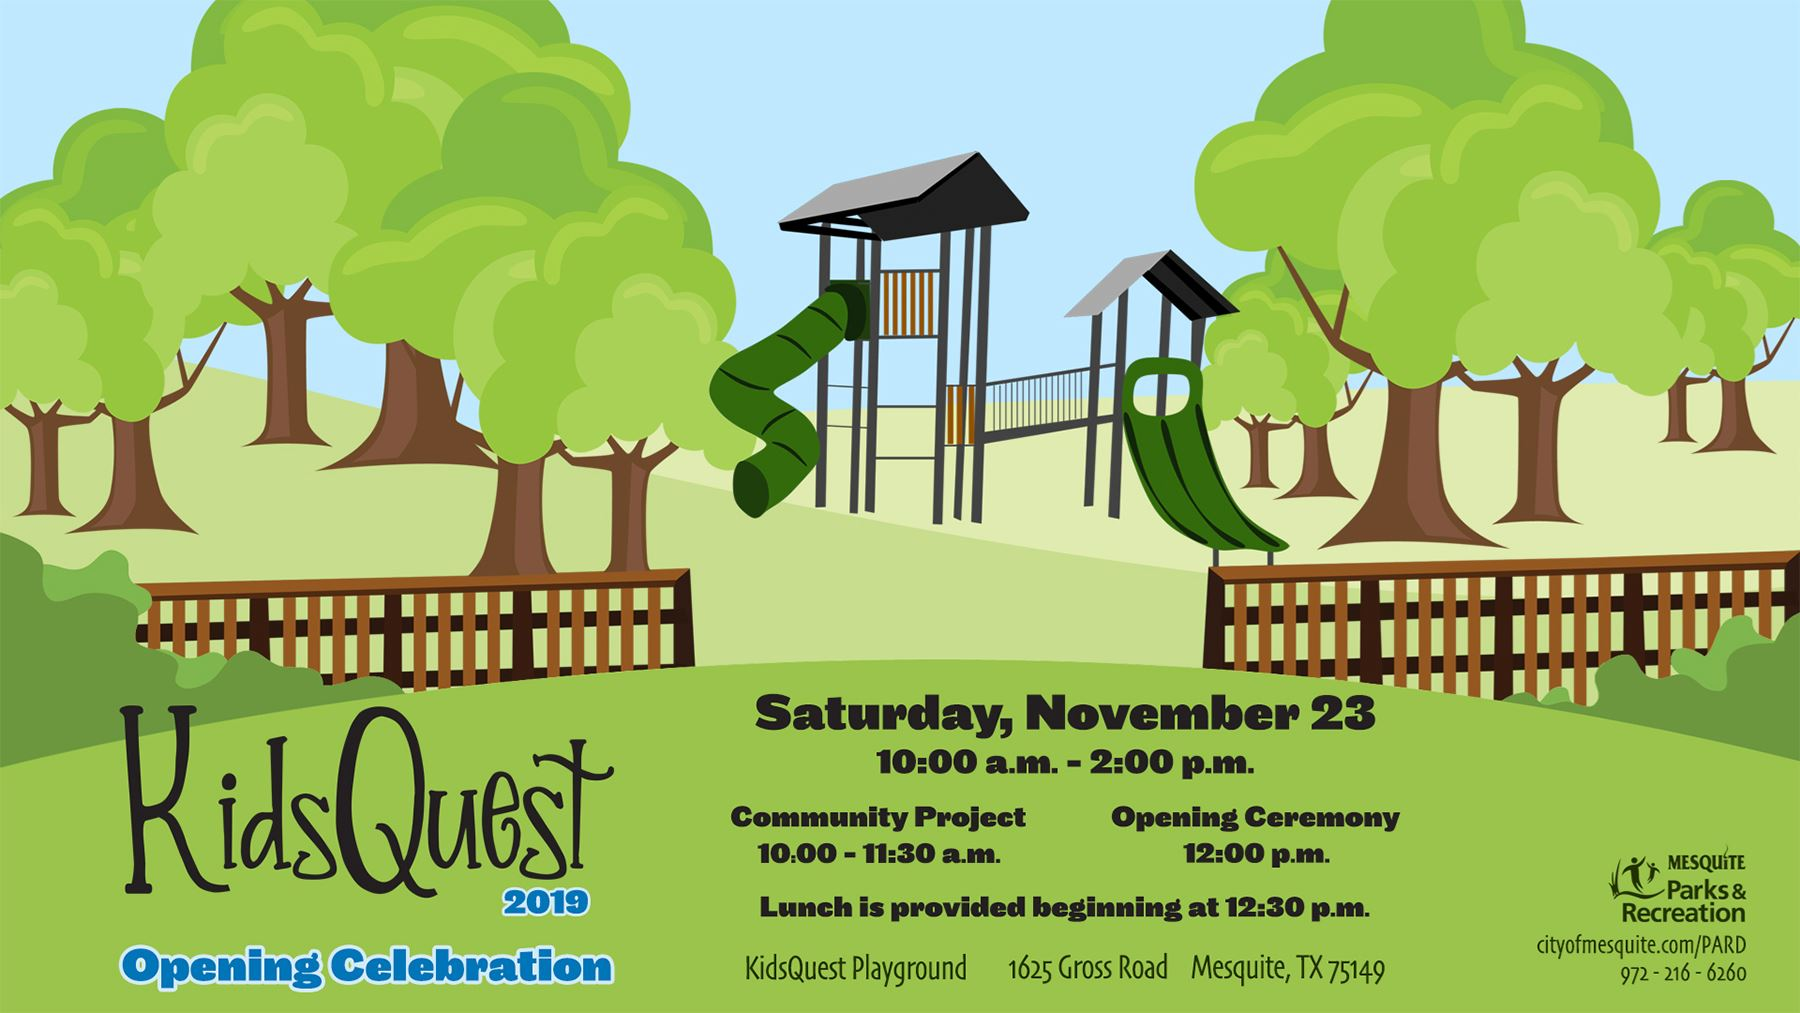 11-23-19 KidsQuest Opening Celebration